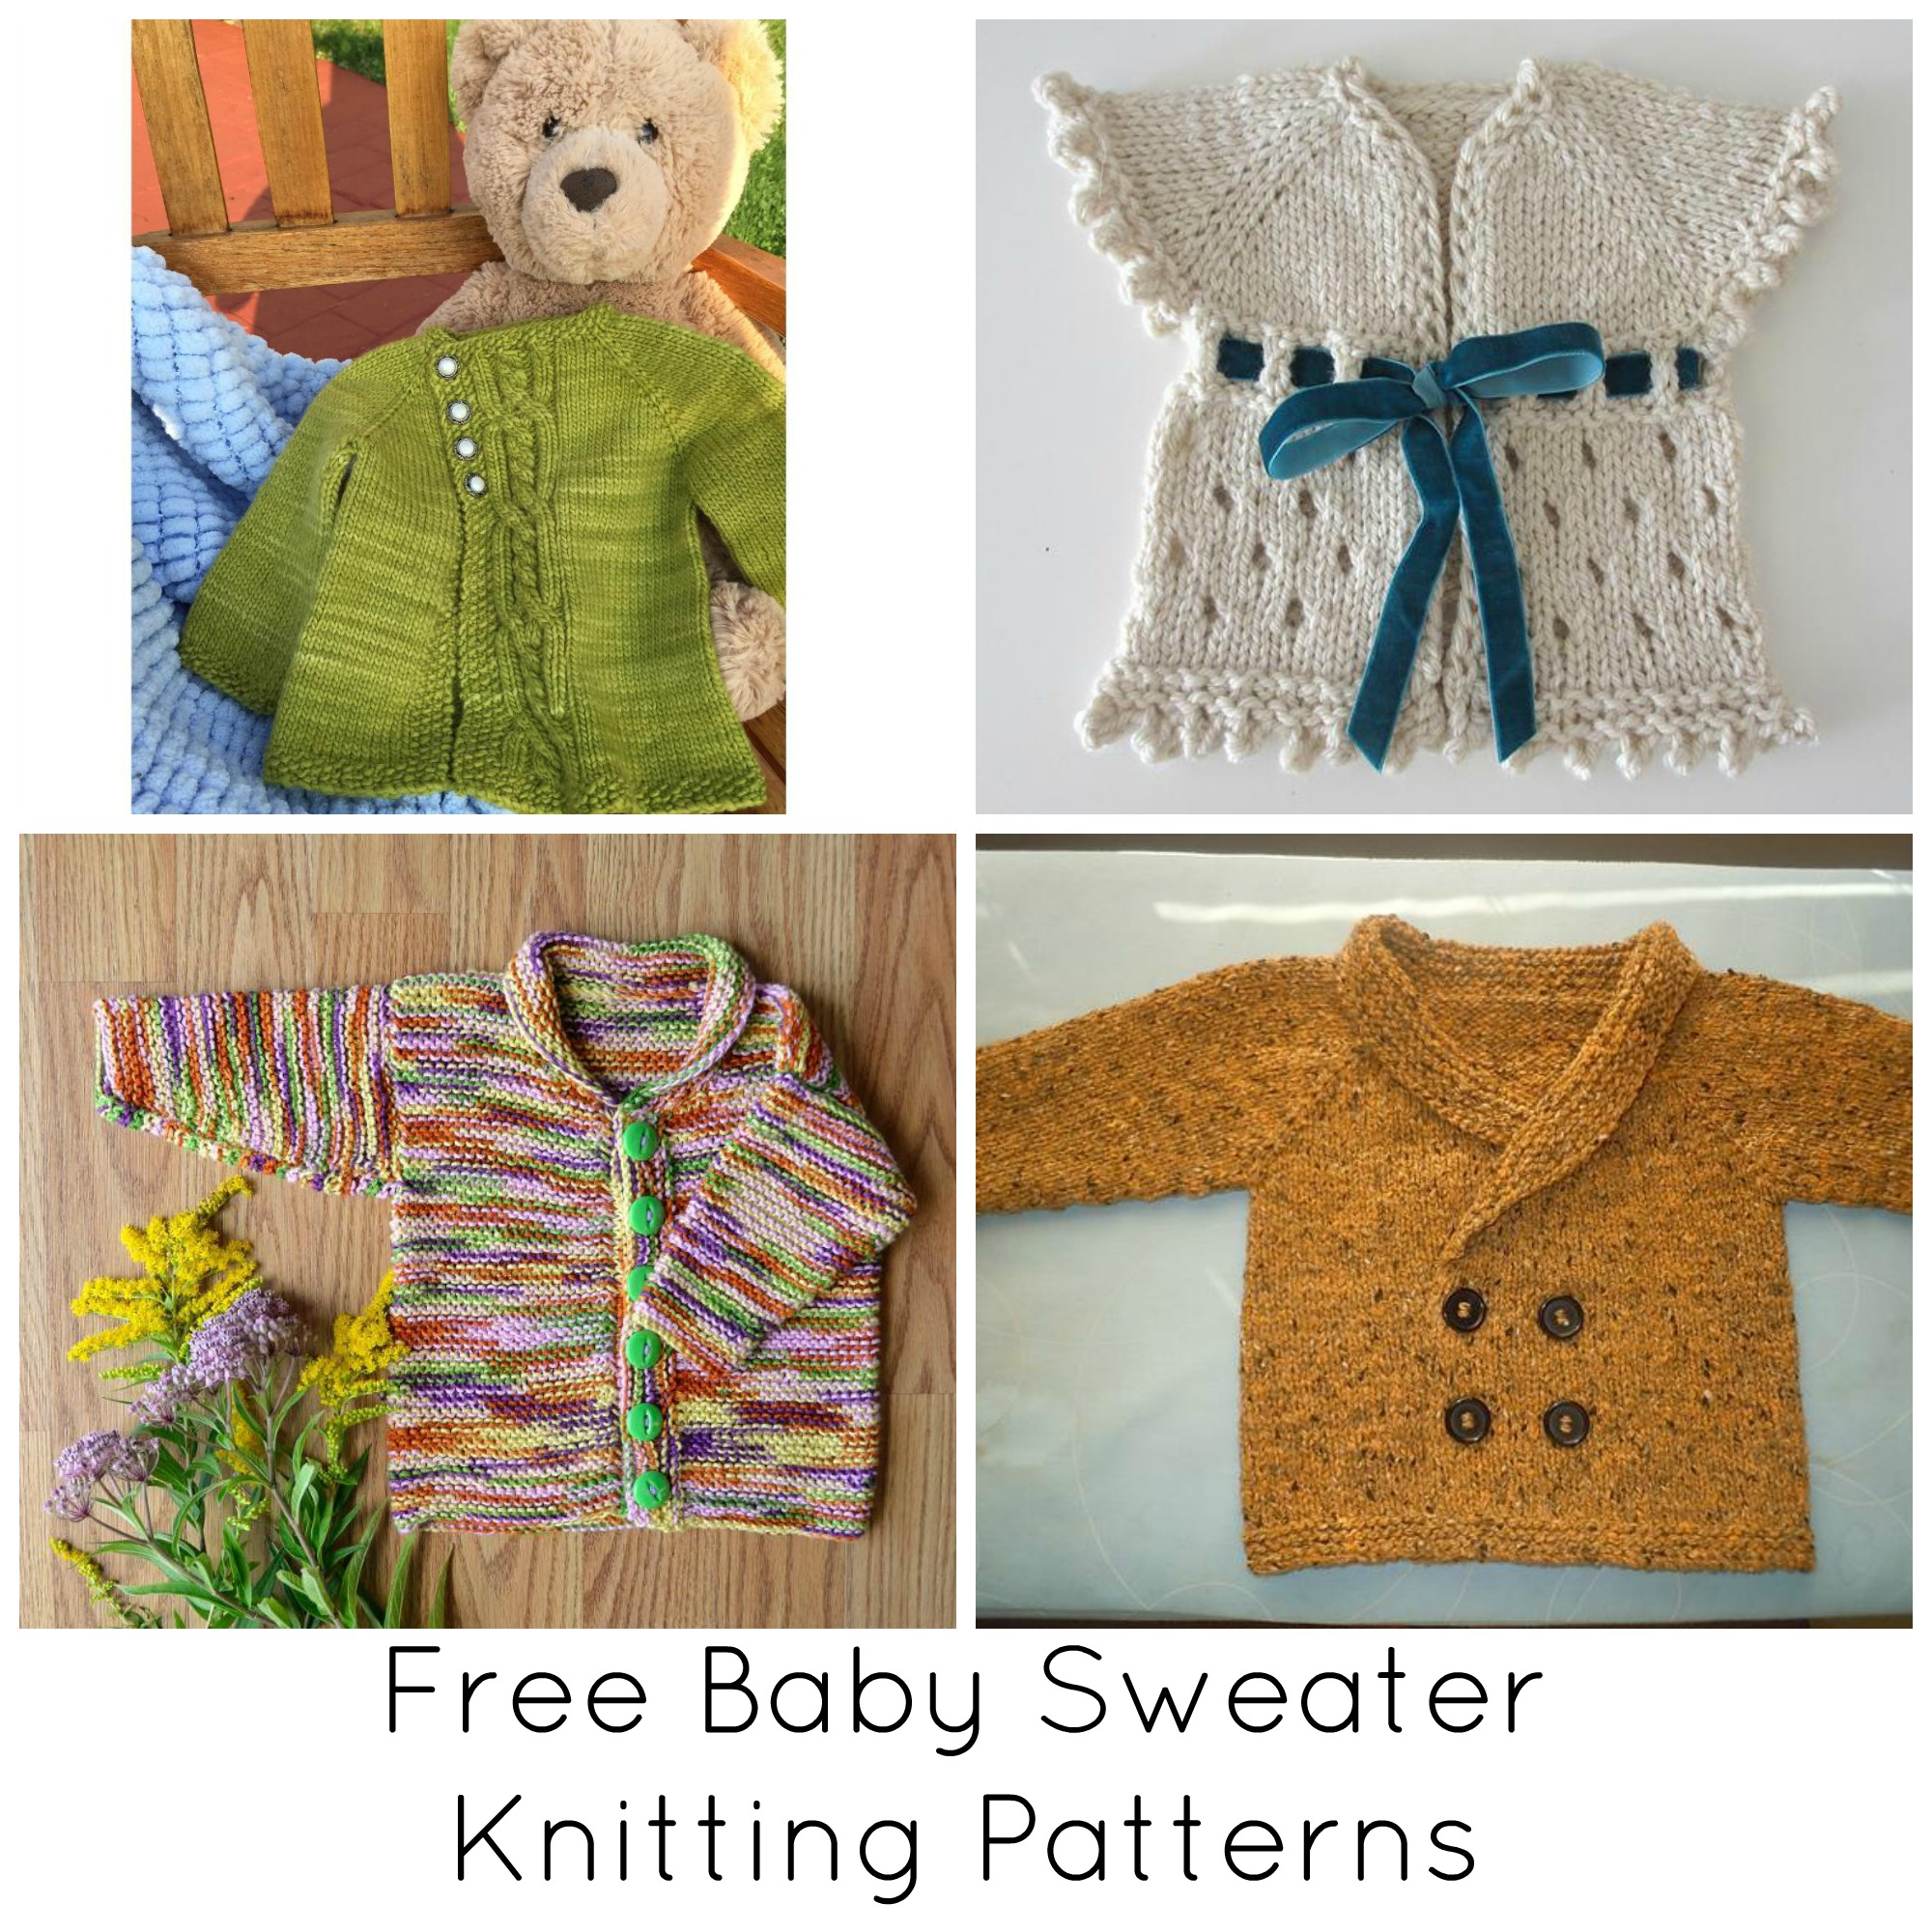 Simple Knit Sweater Pattern Free Our Favorite Free Ba Sweater Knitting Patterns